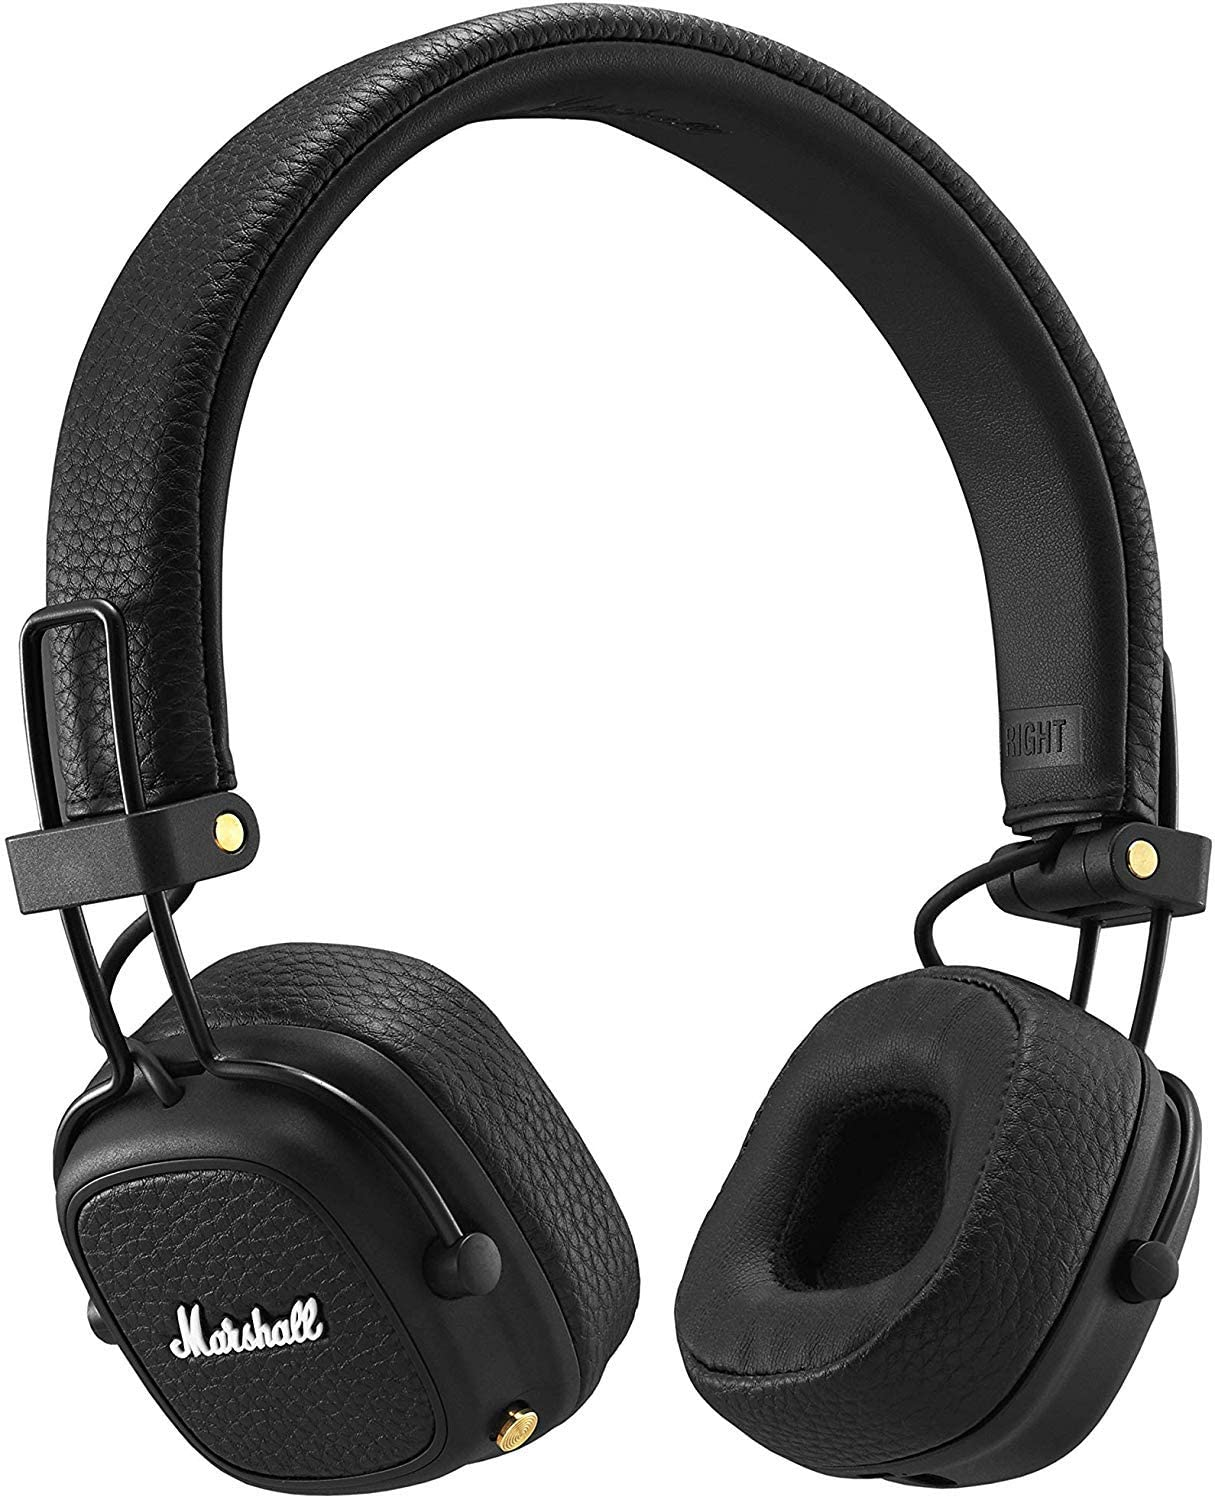 Marshall Major III Auriculares Bluetooth Plegables - Negro